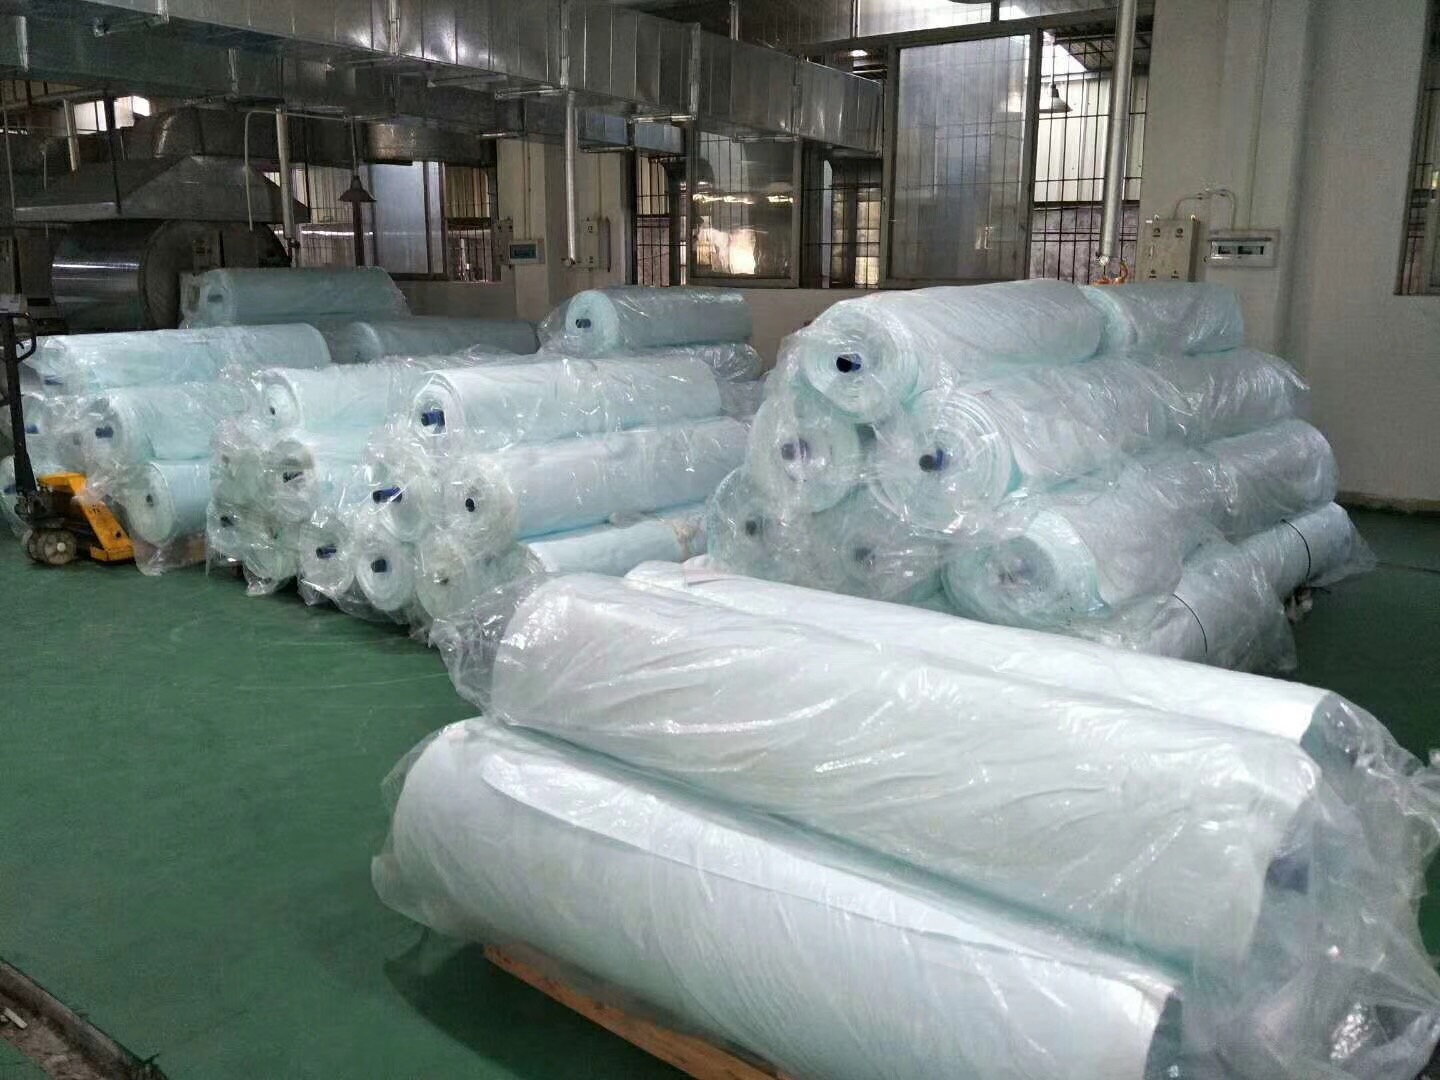 Biodegradation no need fabric softener apparel soft bulk laundry detergent sheets